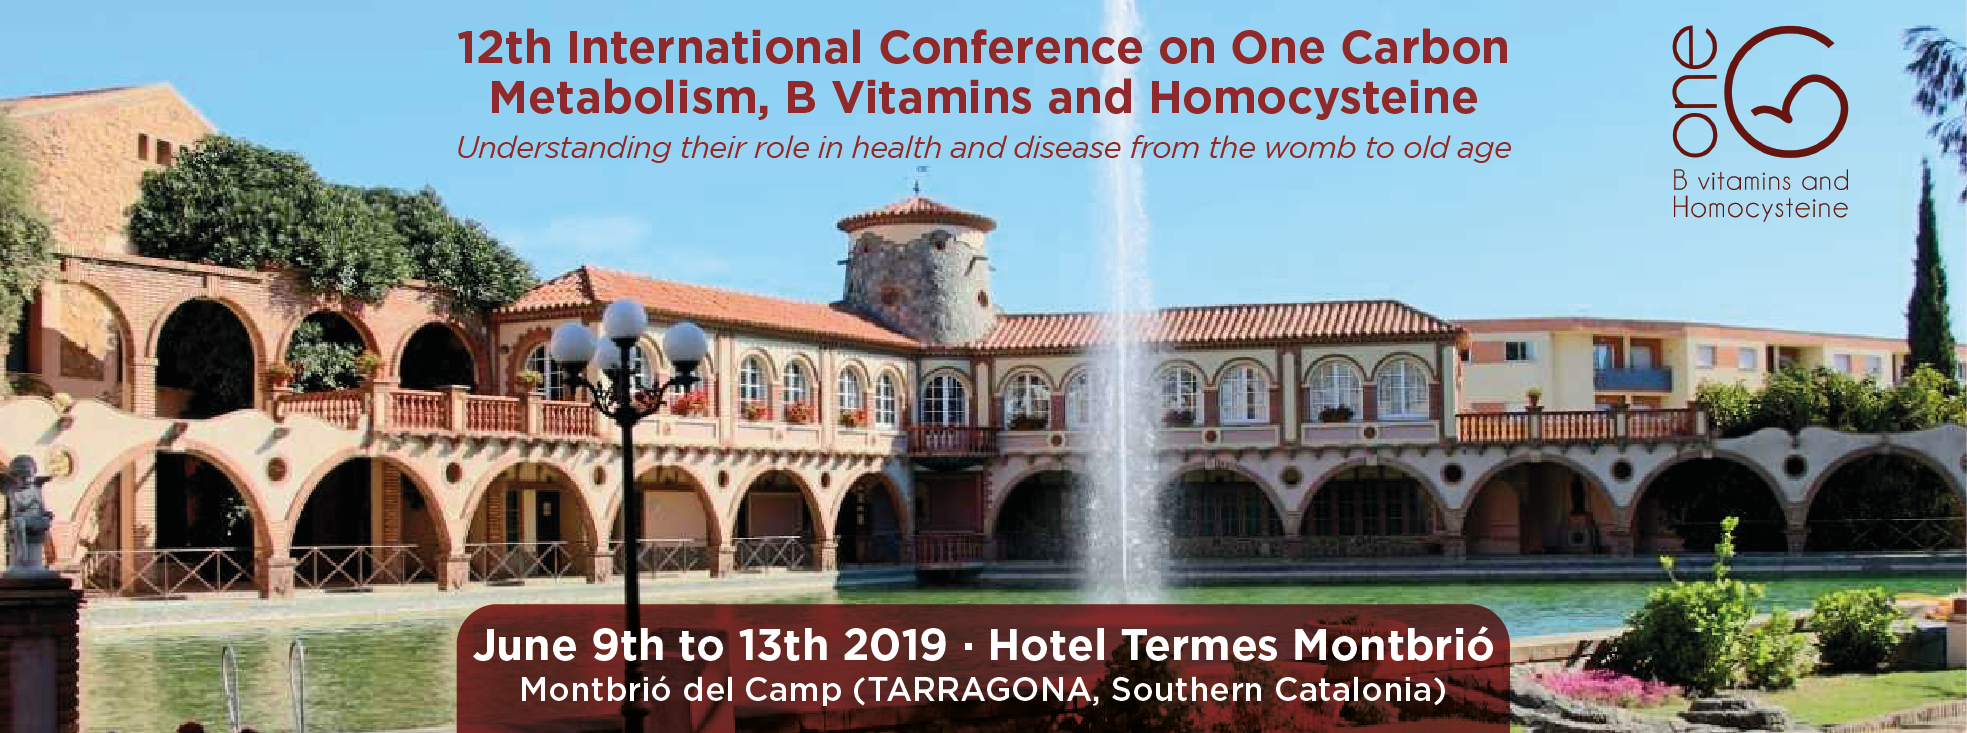 12th International Conference on One-Carbon Metabolism, B Vitamins and Homocysteine